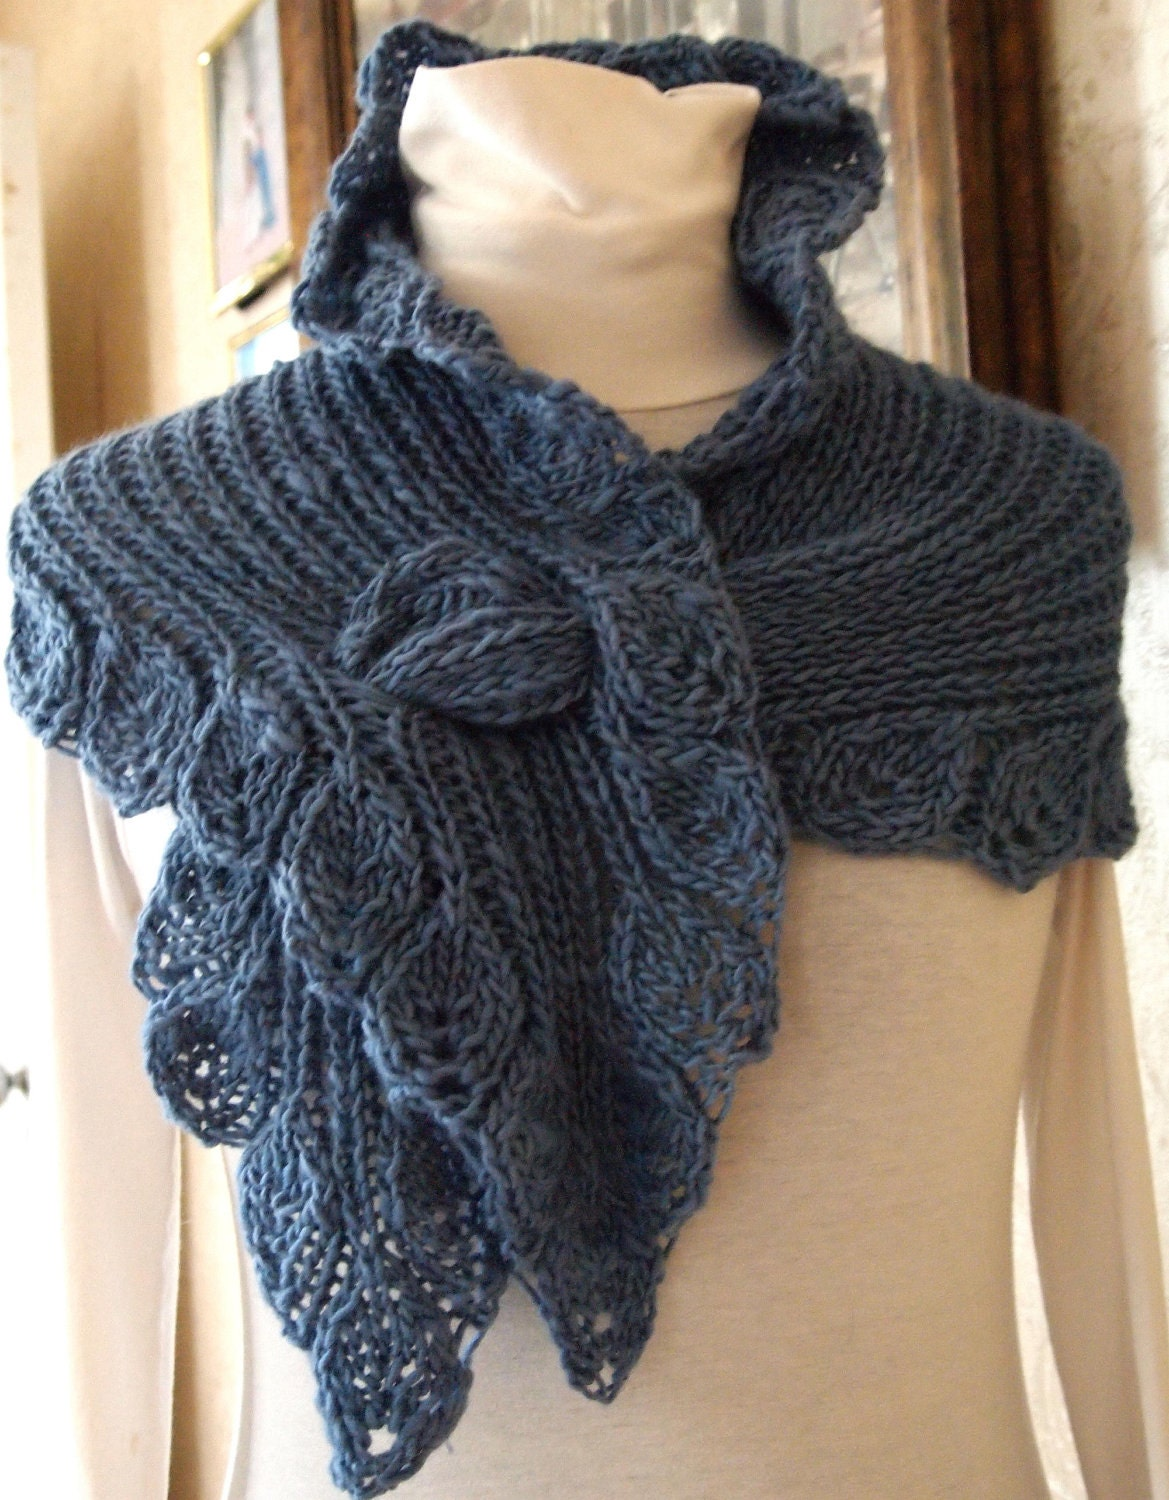 Knitting Pattern Ruffle Scarf : knitting pattern lace knit cowl scarf pdf by KnitChicGrace ...